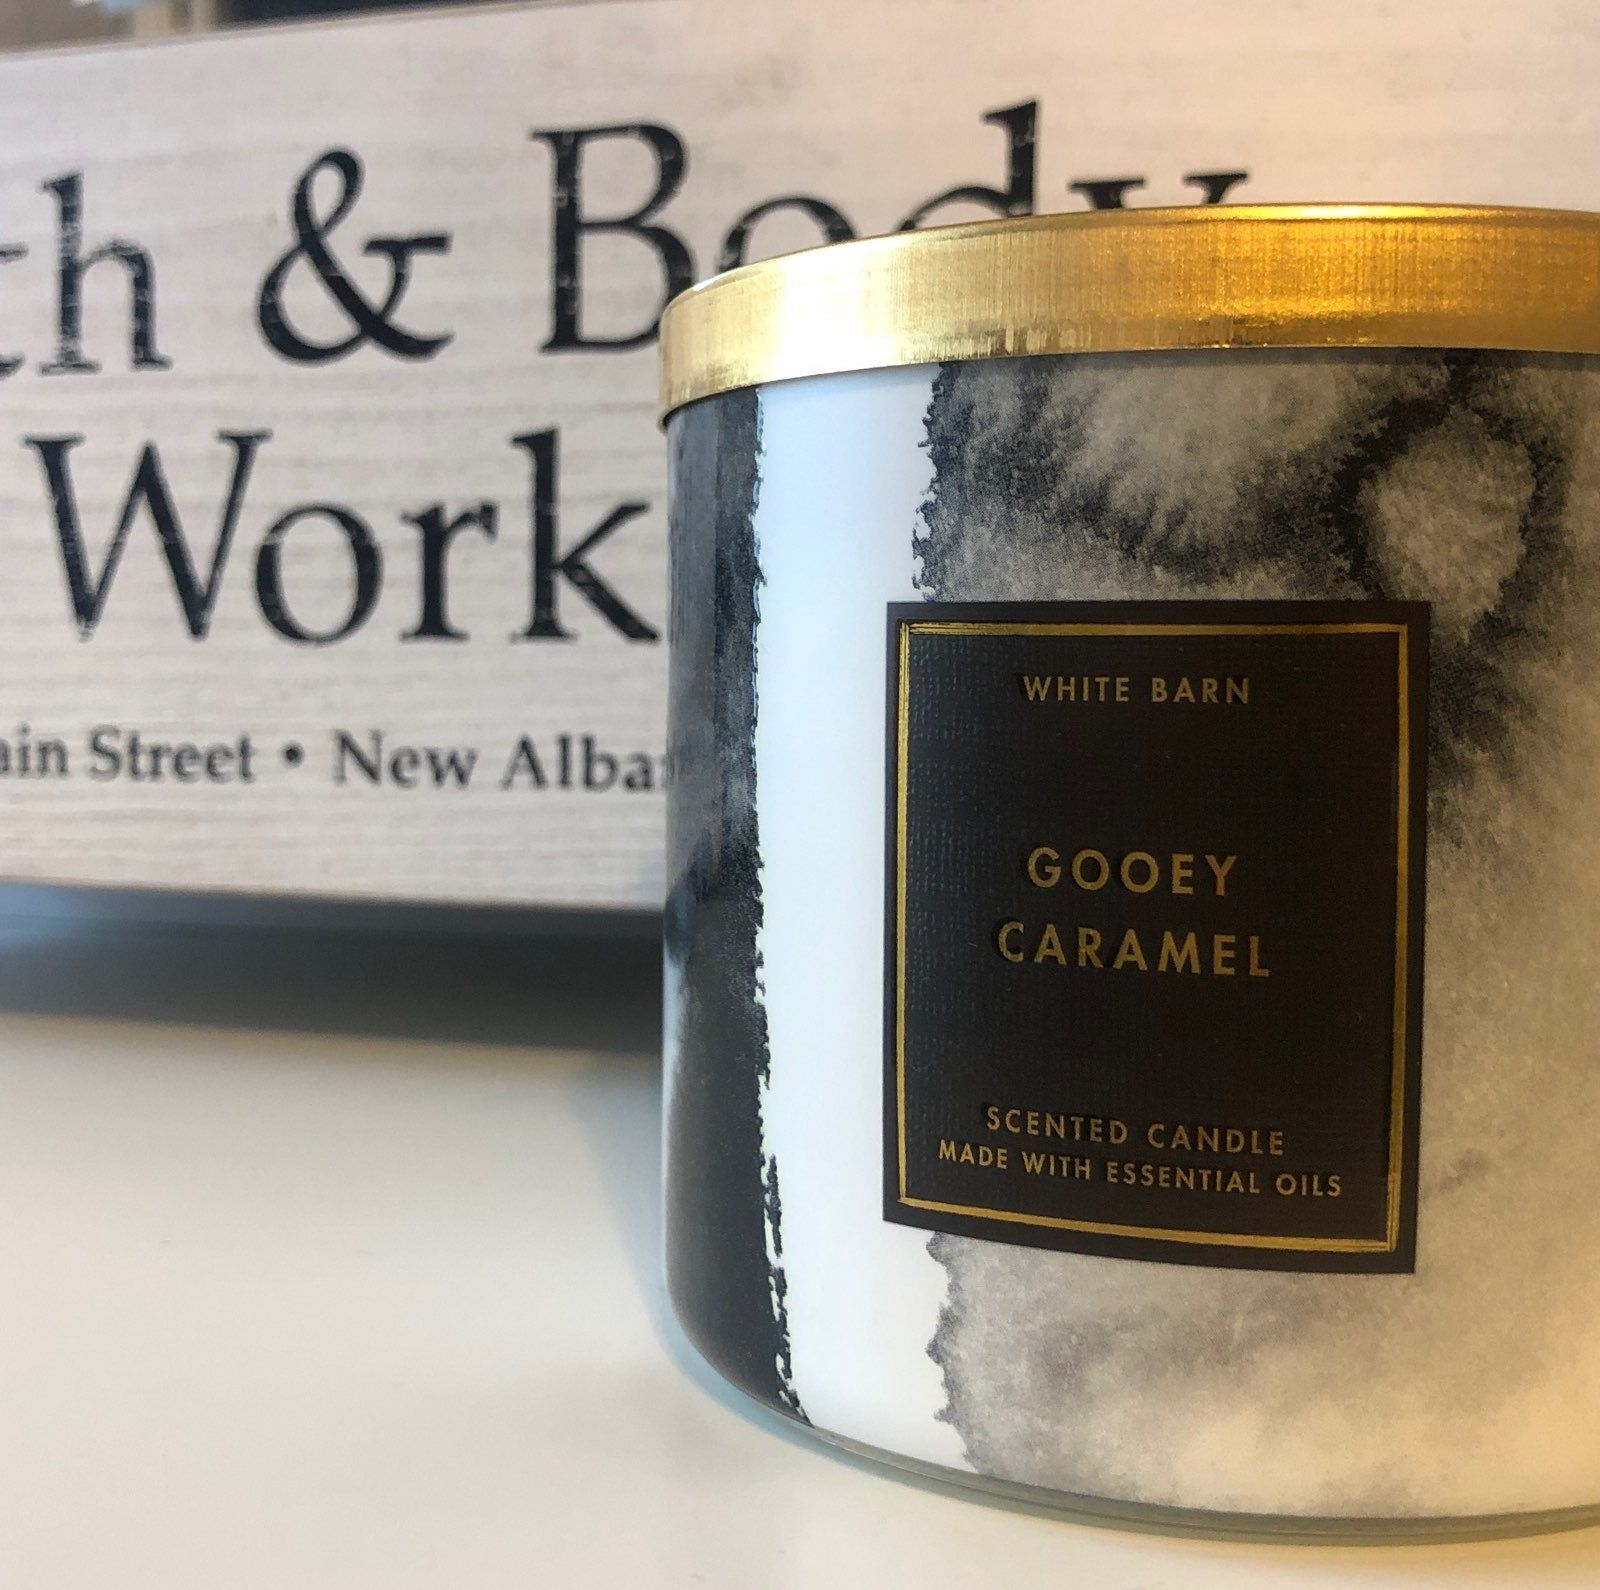 Gooey Caramel Fragrance Notes Melted Caramel Crystallized Sugar Warm Butter With Essential Oi How To Melt Caramel Caramel Candles Bath Body Works Candles